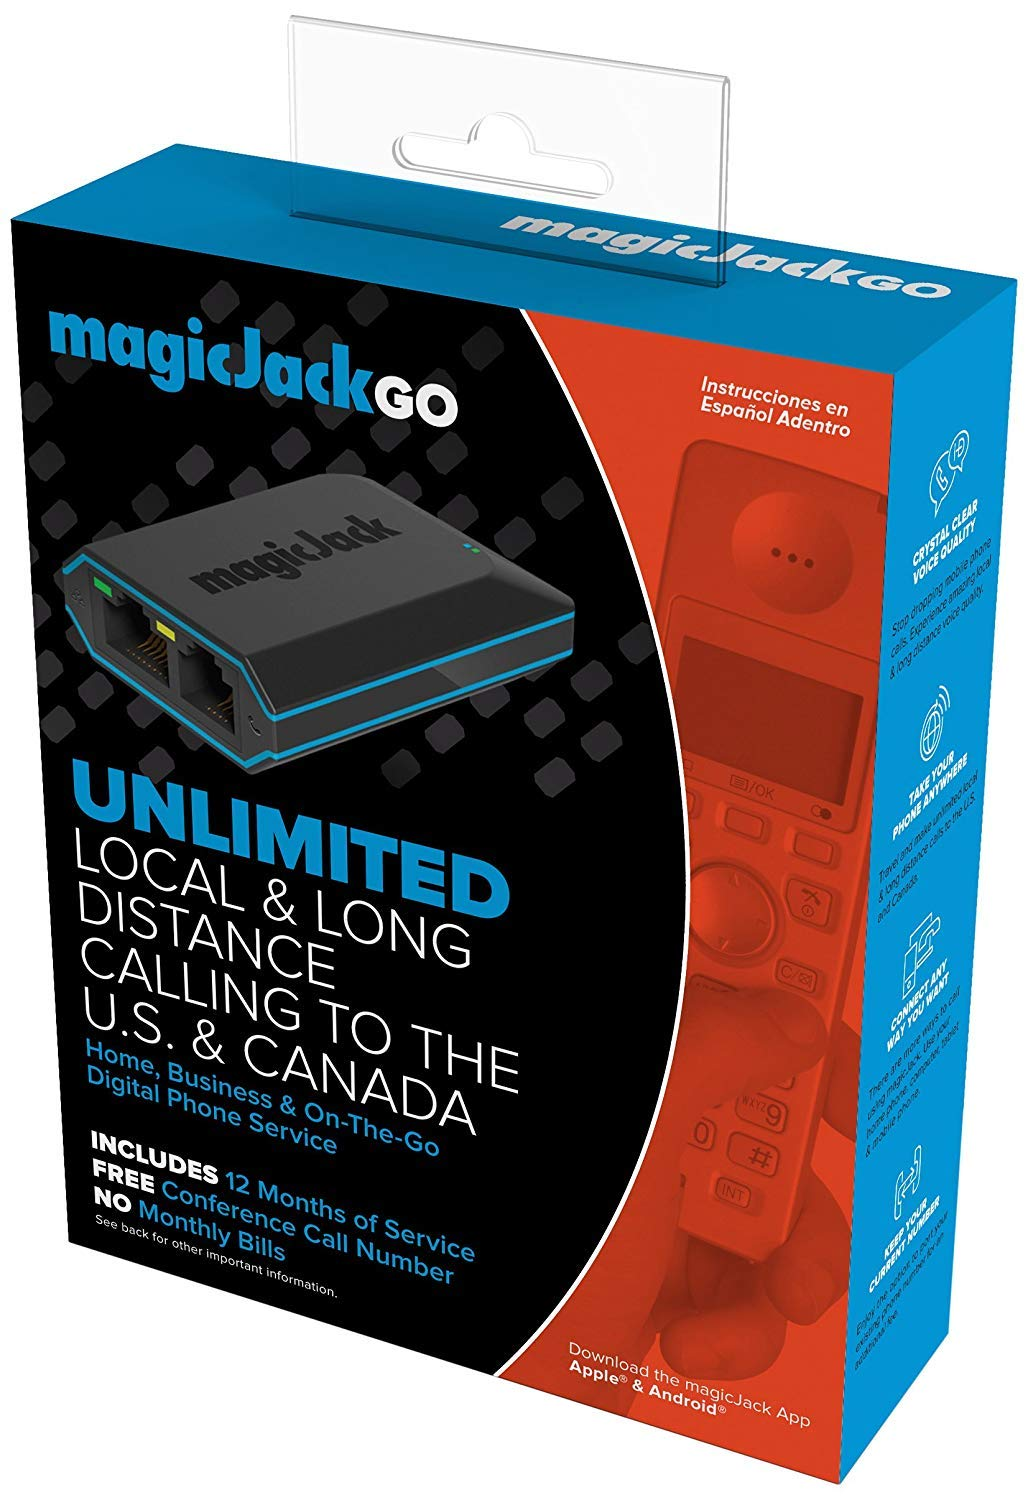 magicJackGO 2017 VOIP Phone Adapter Portable Home and On-The-Go Digital Phone Service. Make Unlimited Local & Long Distance Calls to The U. S. and Canada. NO Monthly Bill. 2017 (1 Pack) by magicJack